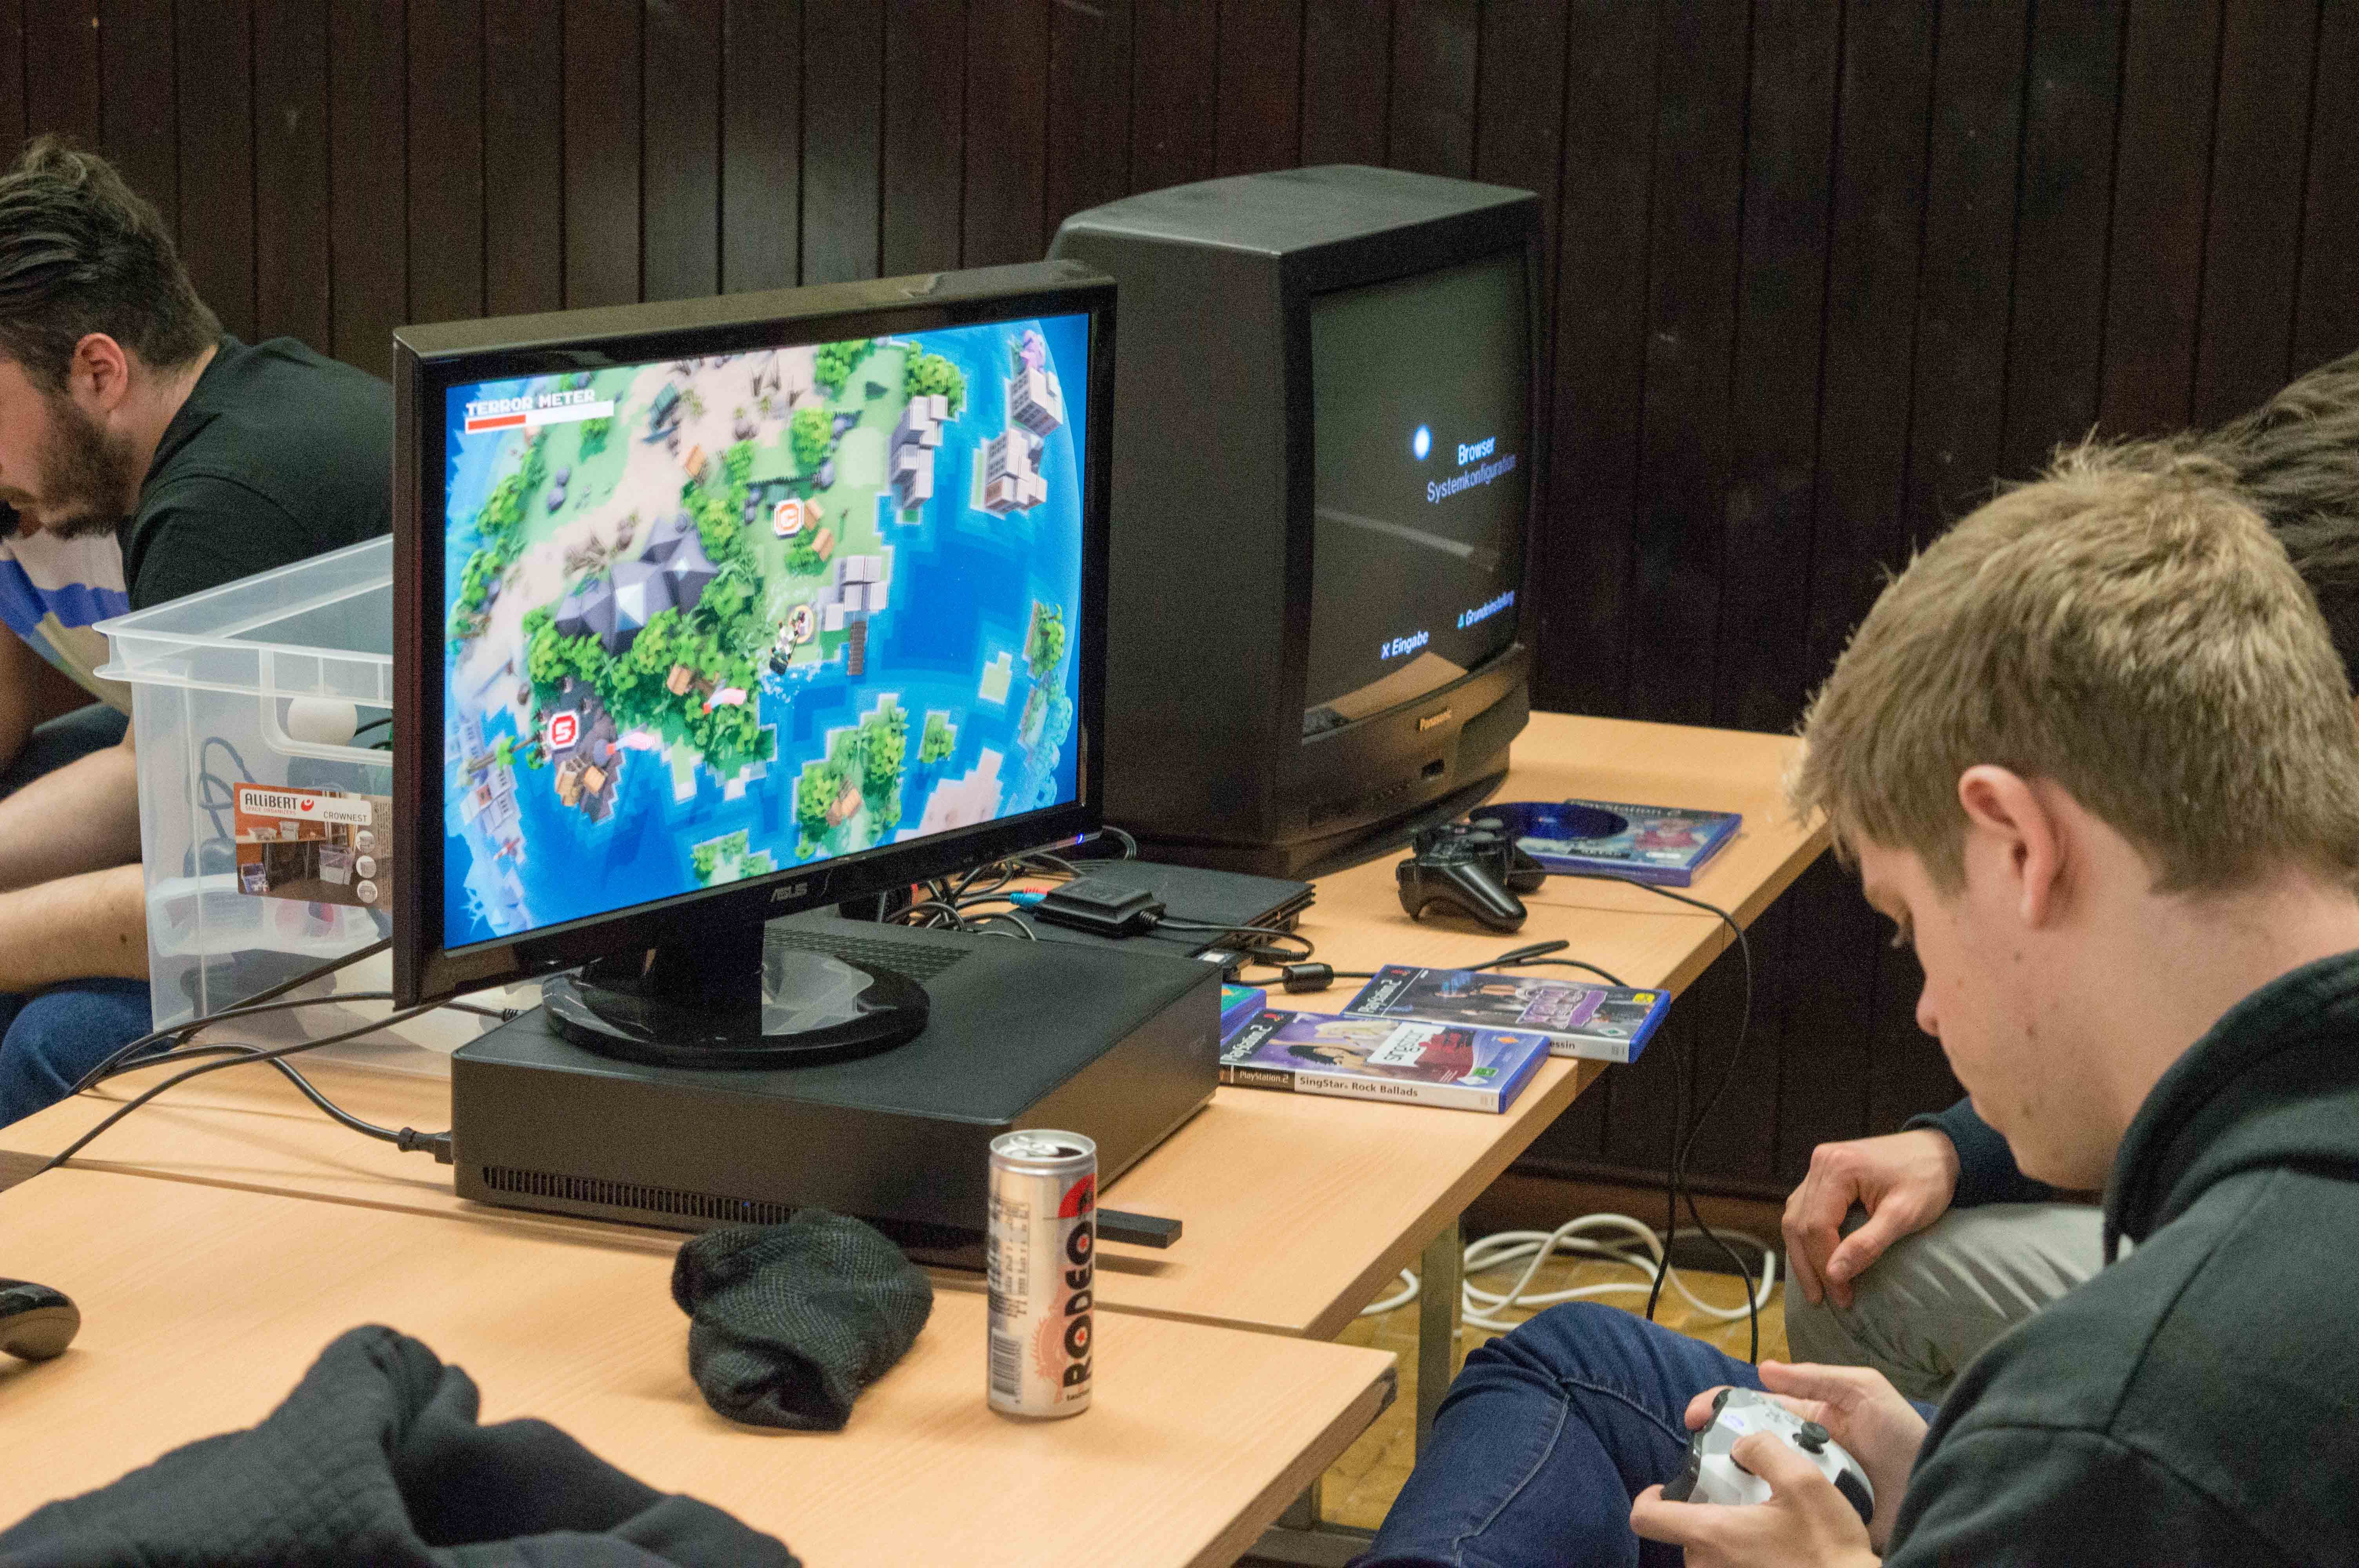 Gaming Cafe 6 Years 2017 Photo by Sam van Maris for Geeks LifeLuxembourg-0778